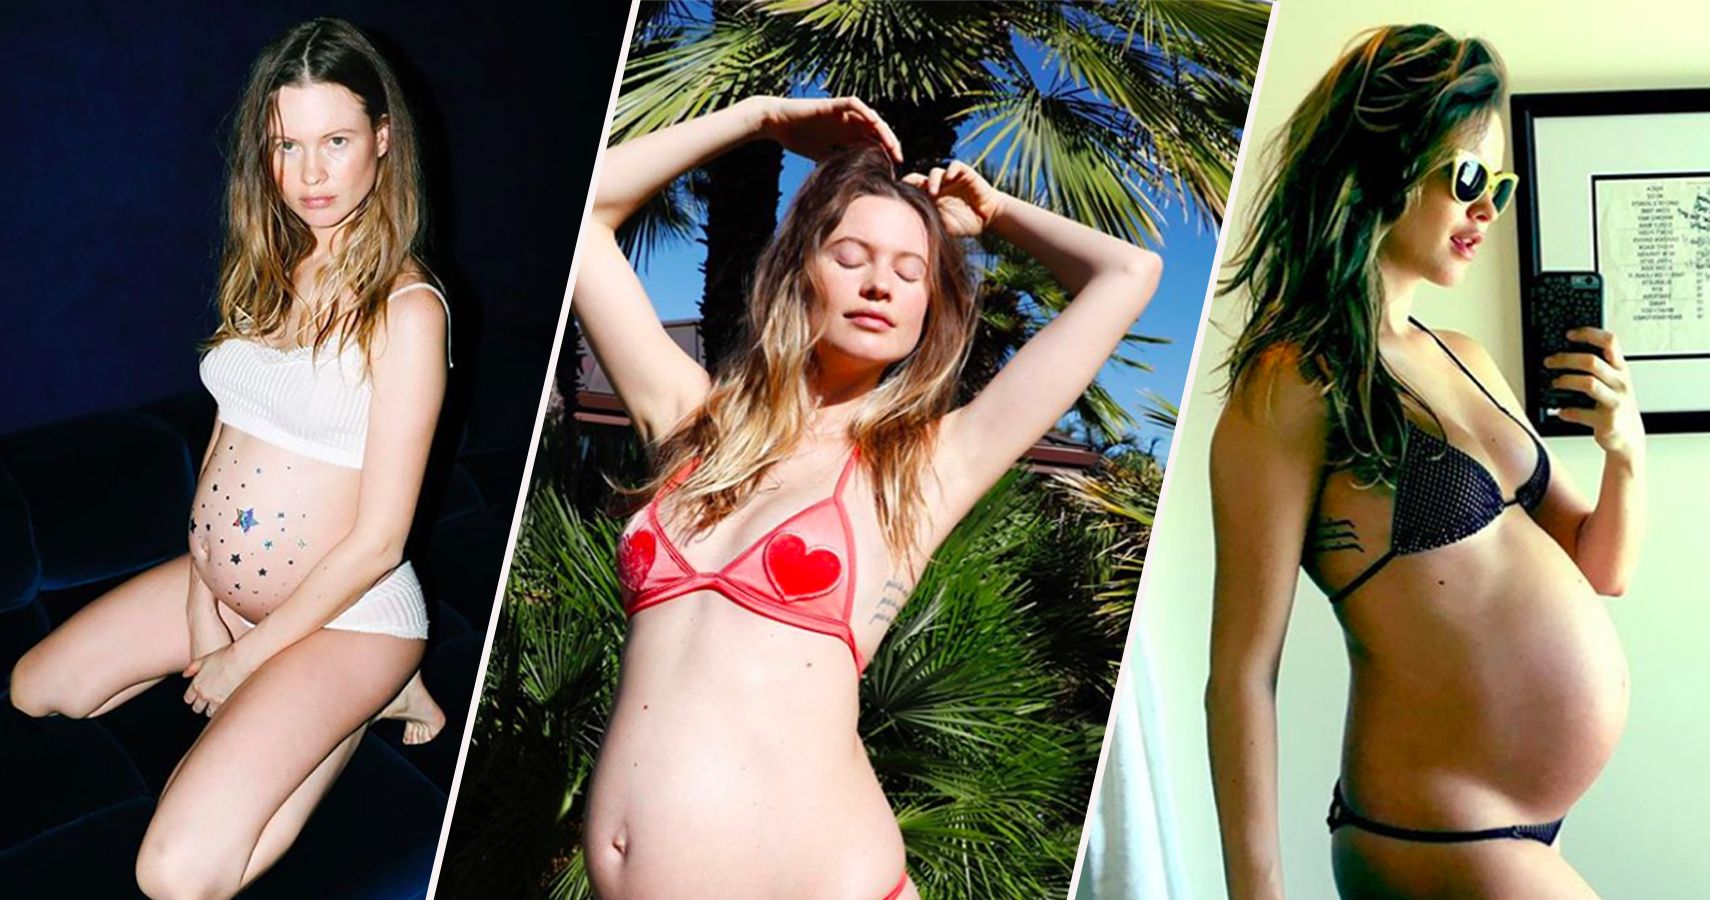 Cheeky behati prinsloo shares naked photo of husband adam levine and daughter dusty